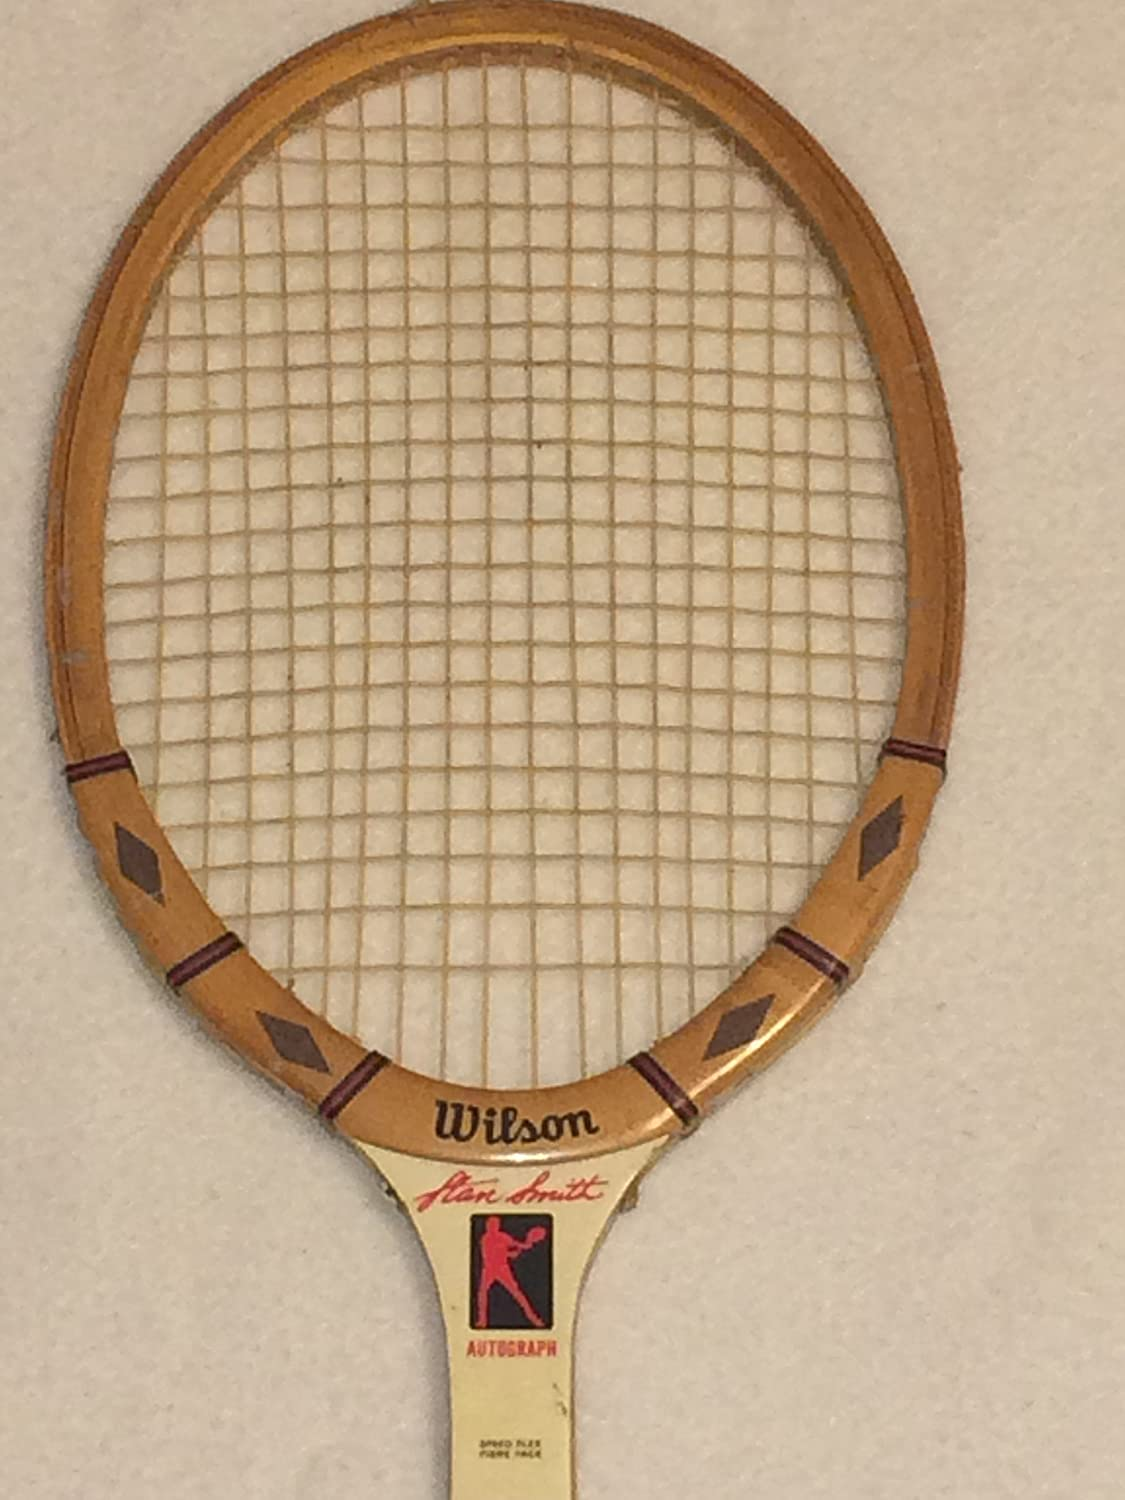 separation shoes e5243 52890 Wilson Stan Smith Autograph Wood Tennis Racquet Medium 4 5/8 ...